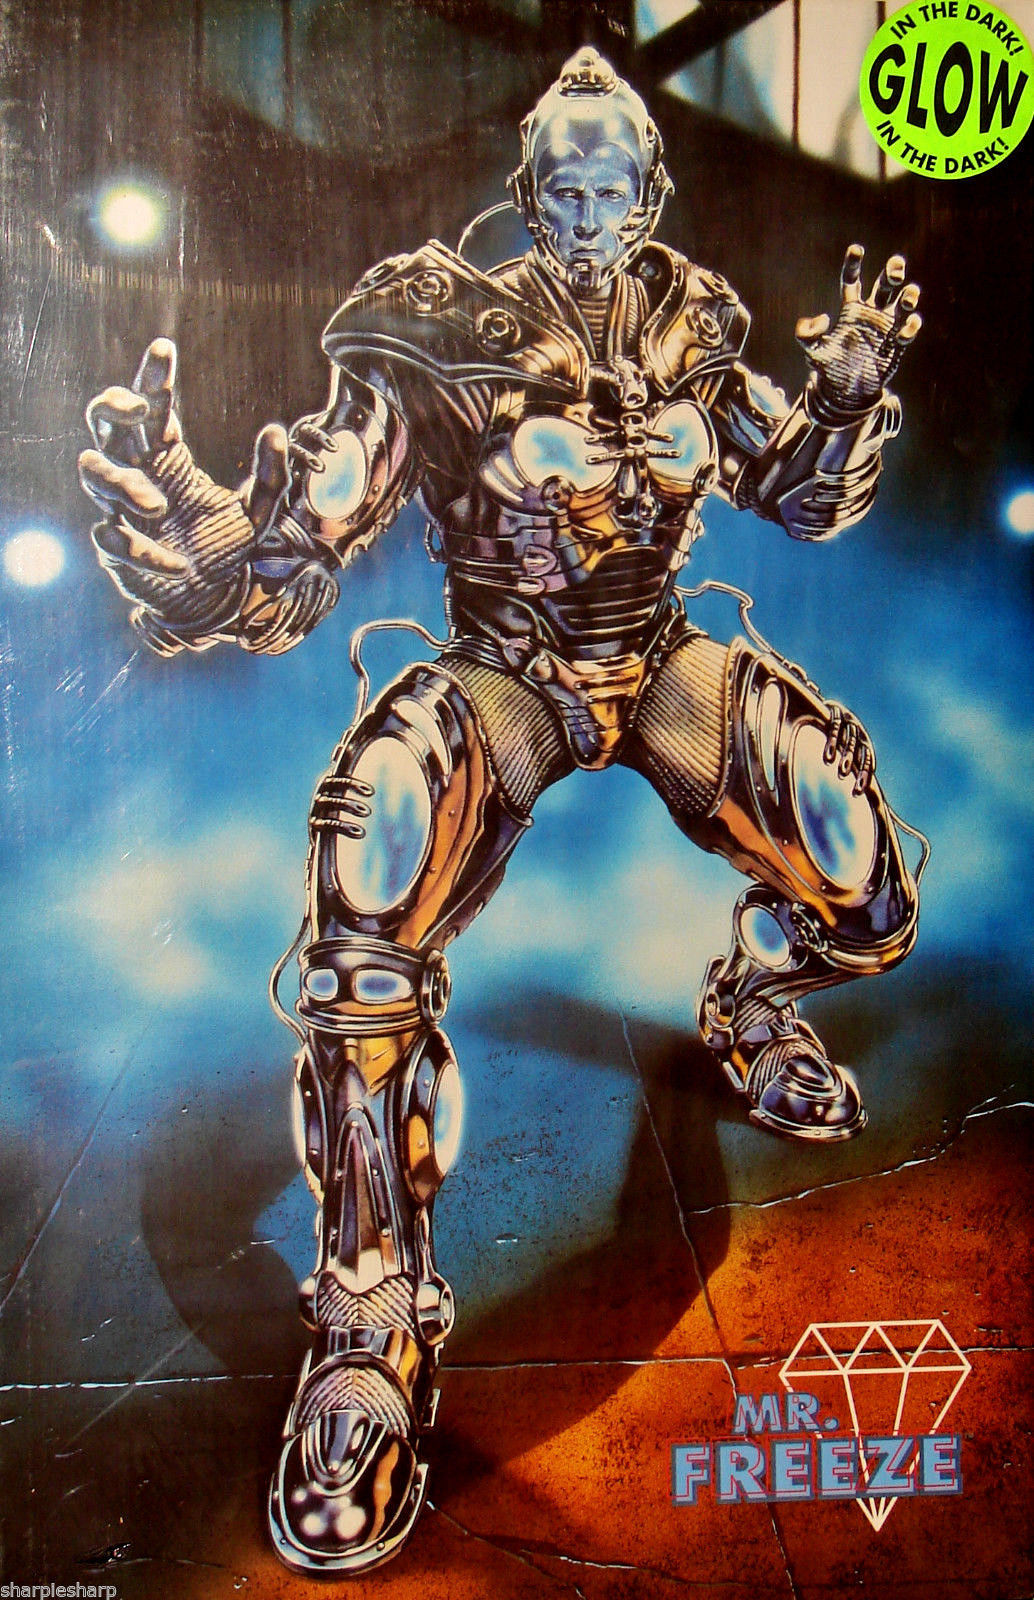 "1997 BATMAN & ROBIN Movie MR. FREEZE GLOW IN THE DARK POSTER 23x34.5"" 30-007 4"